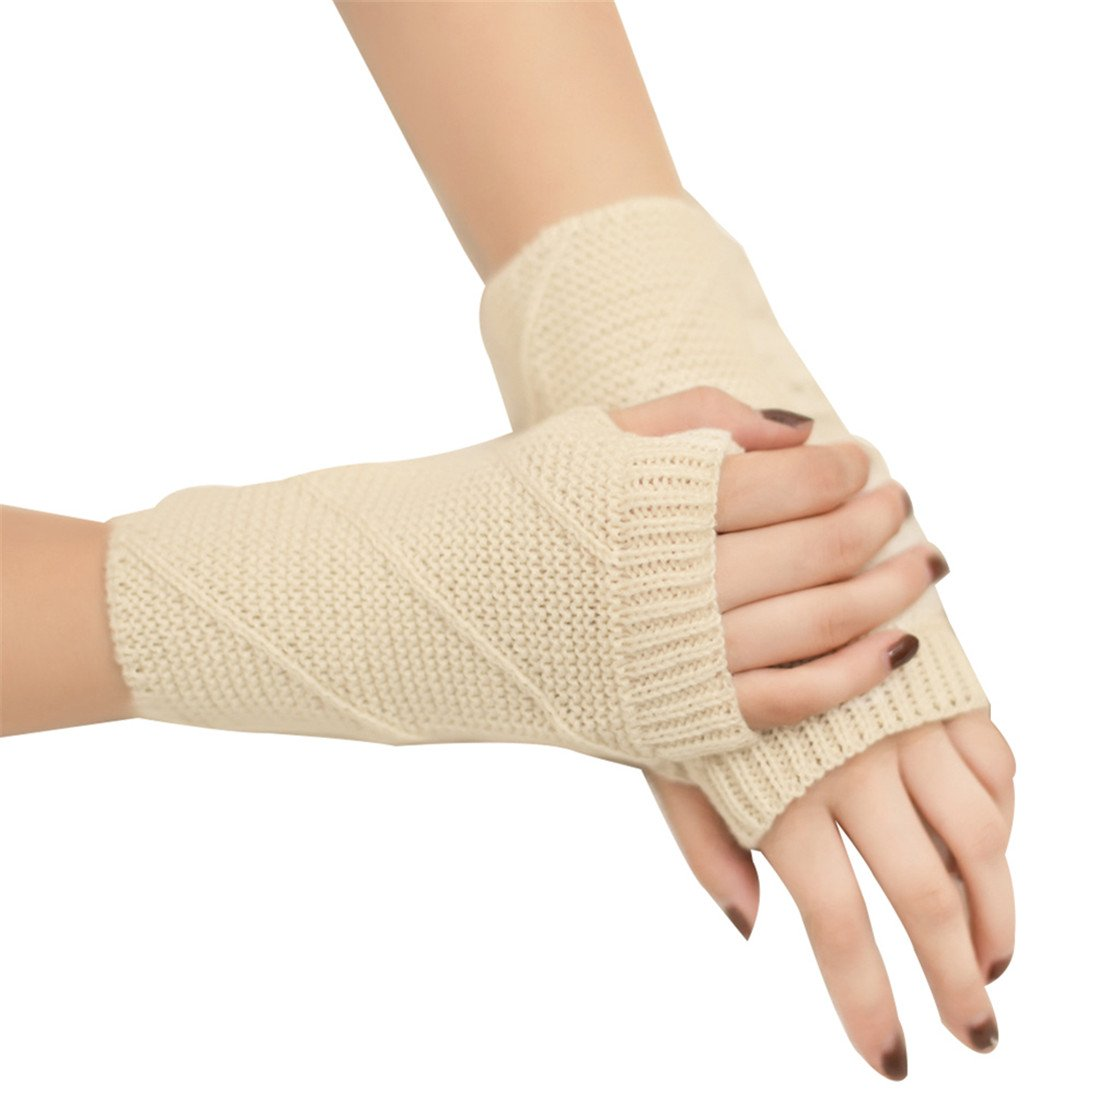 Alamana Winter Warm Keeper Knitted Mitten Twilled Solid Color Half-finger Women Gloves size One size (Light Beige)